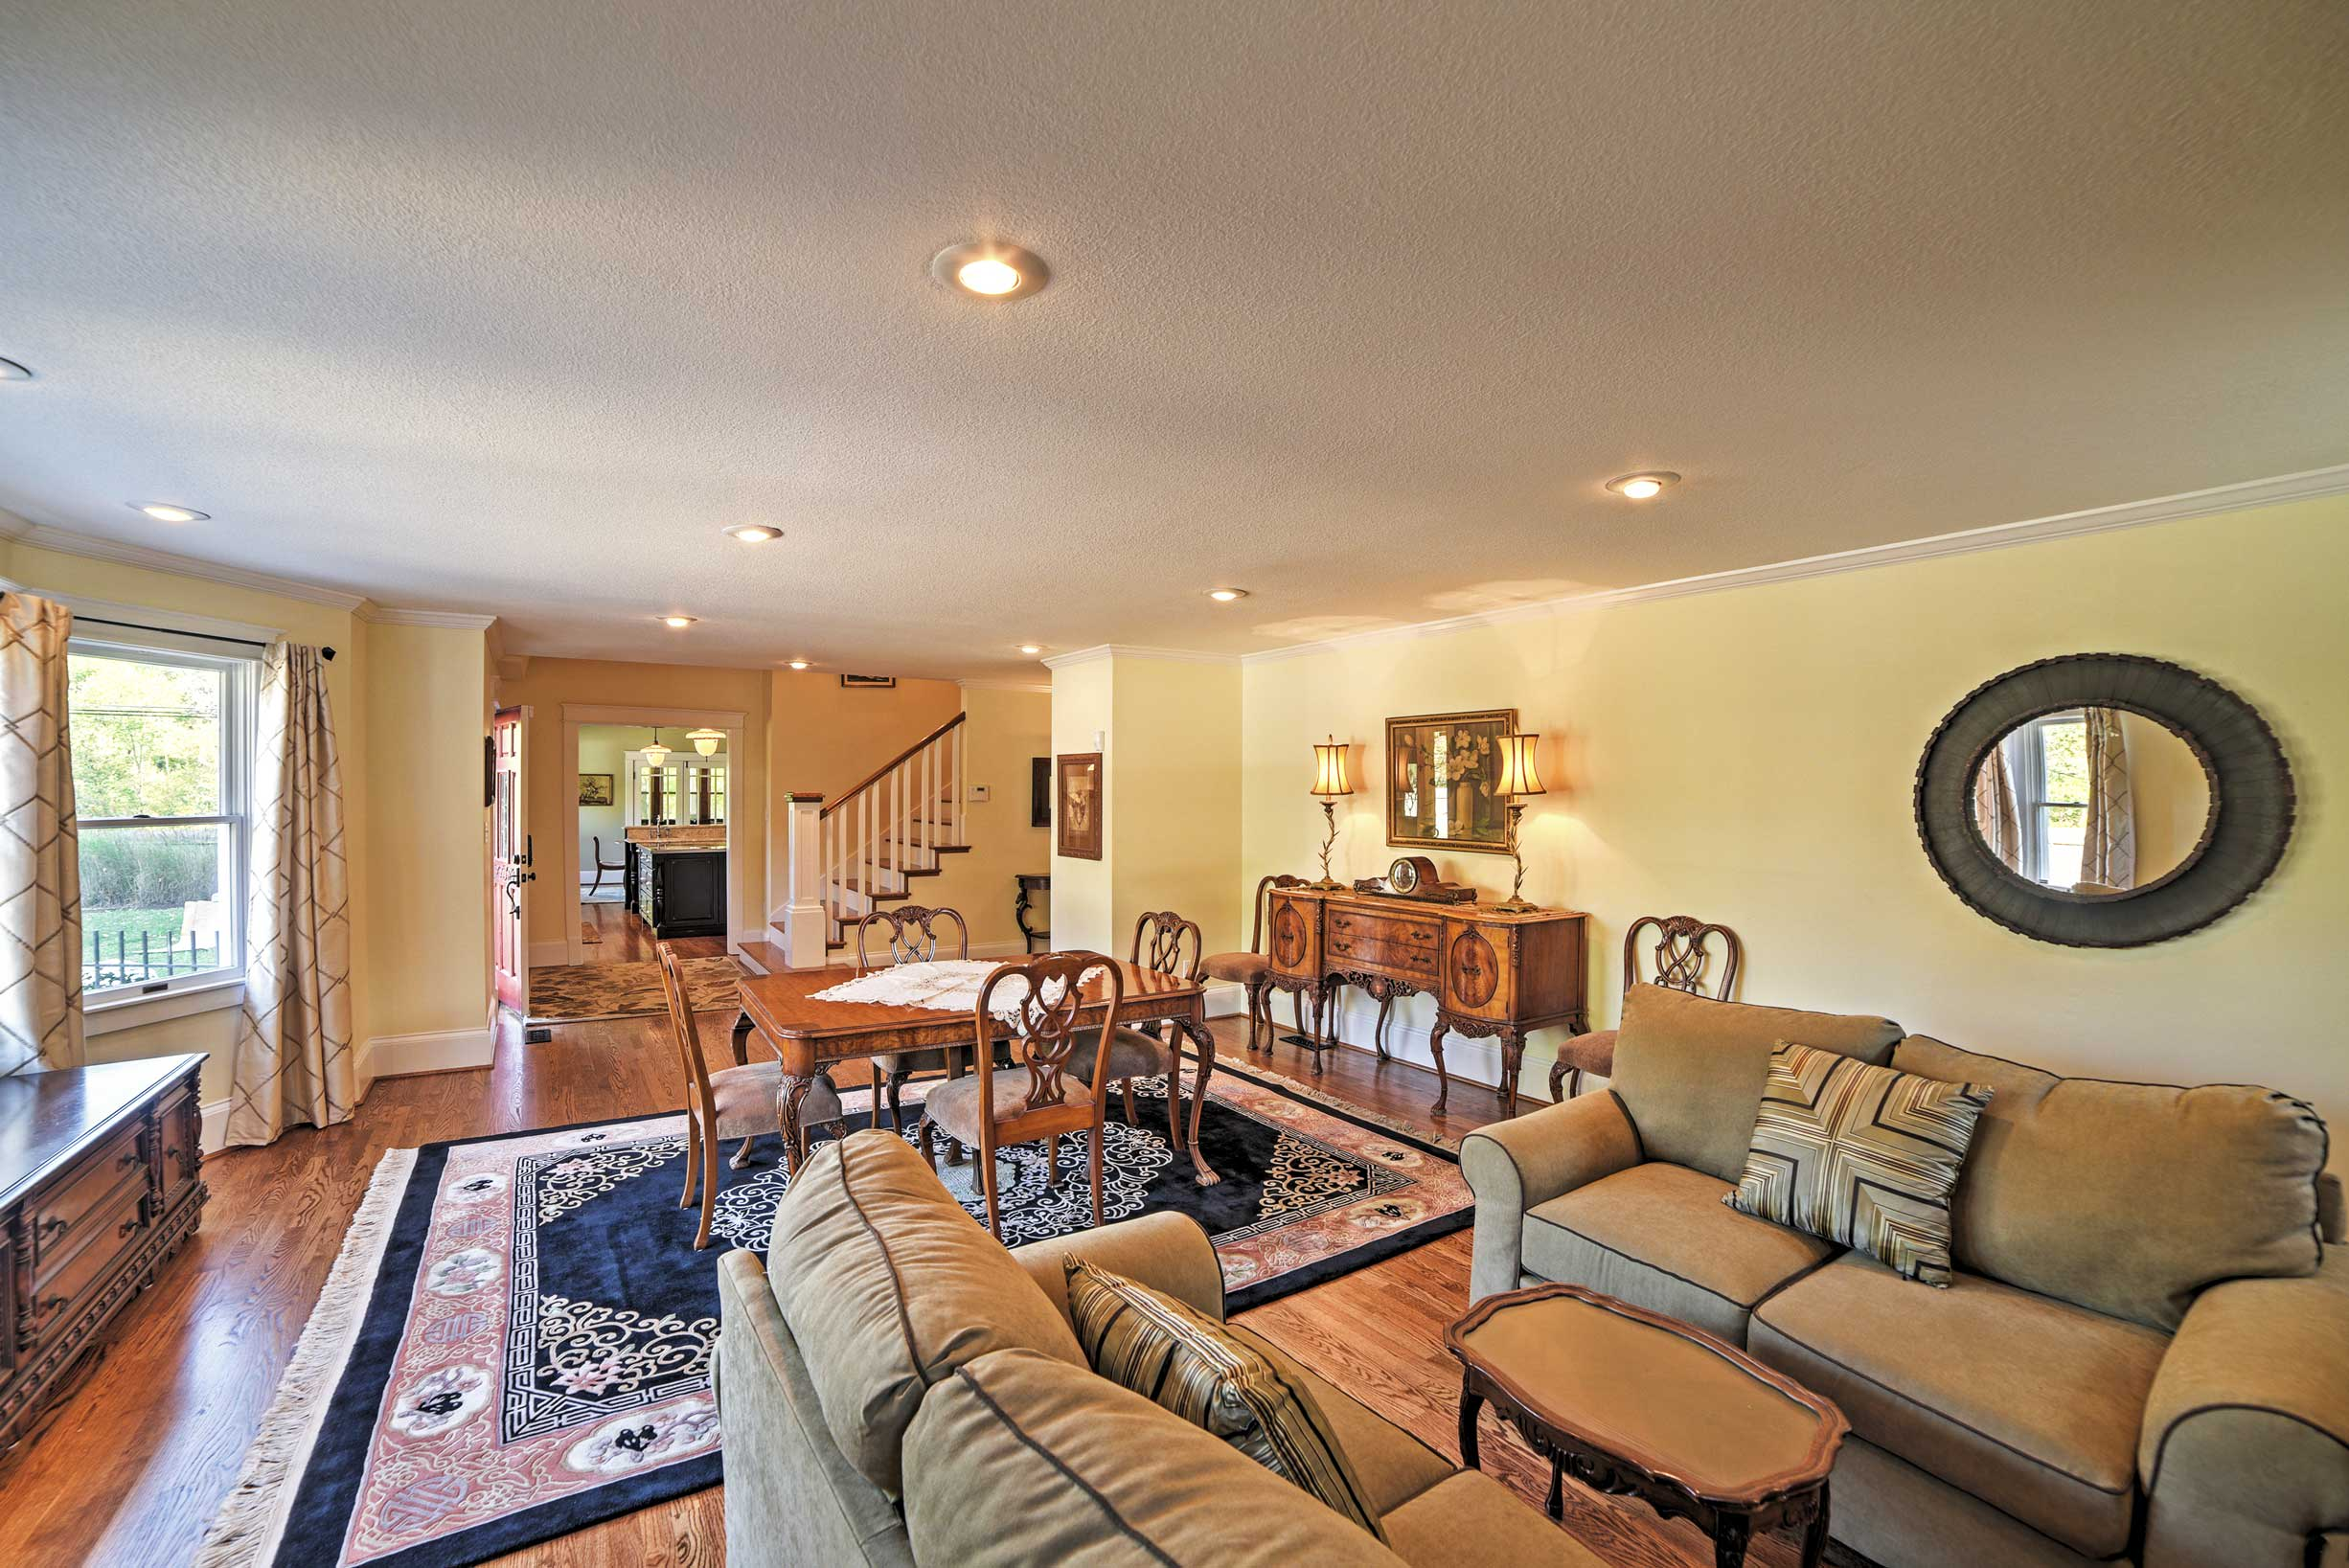 Spread out throughout 5,800 square feet of living space.